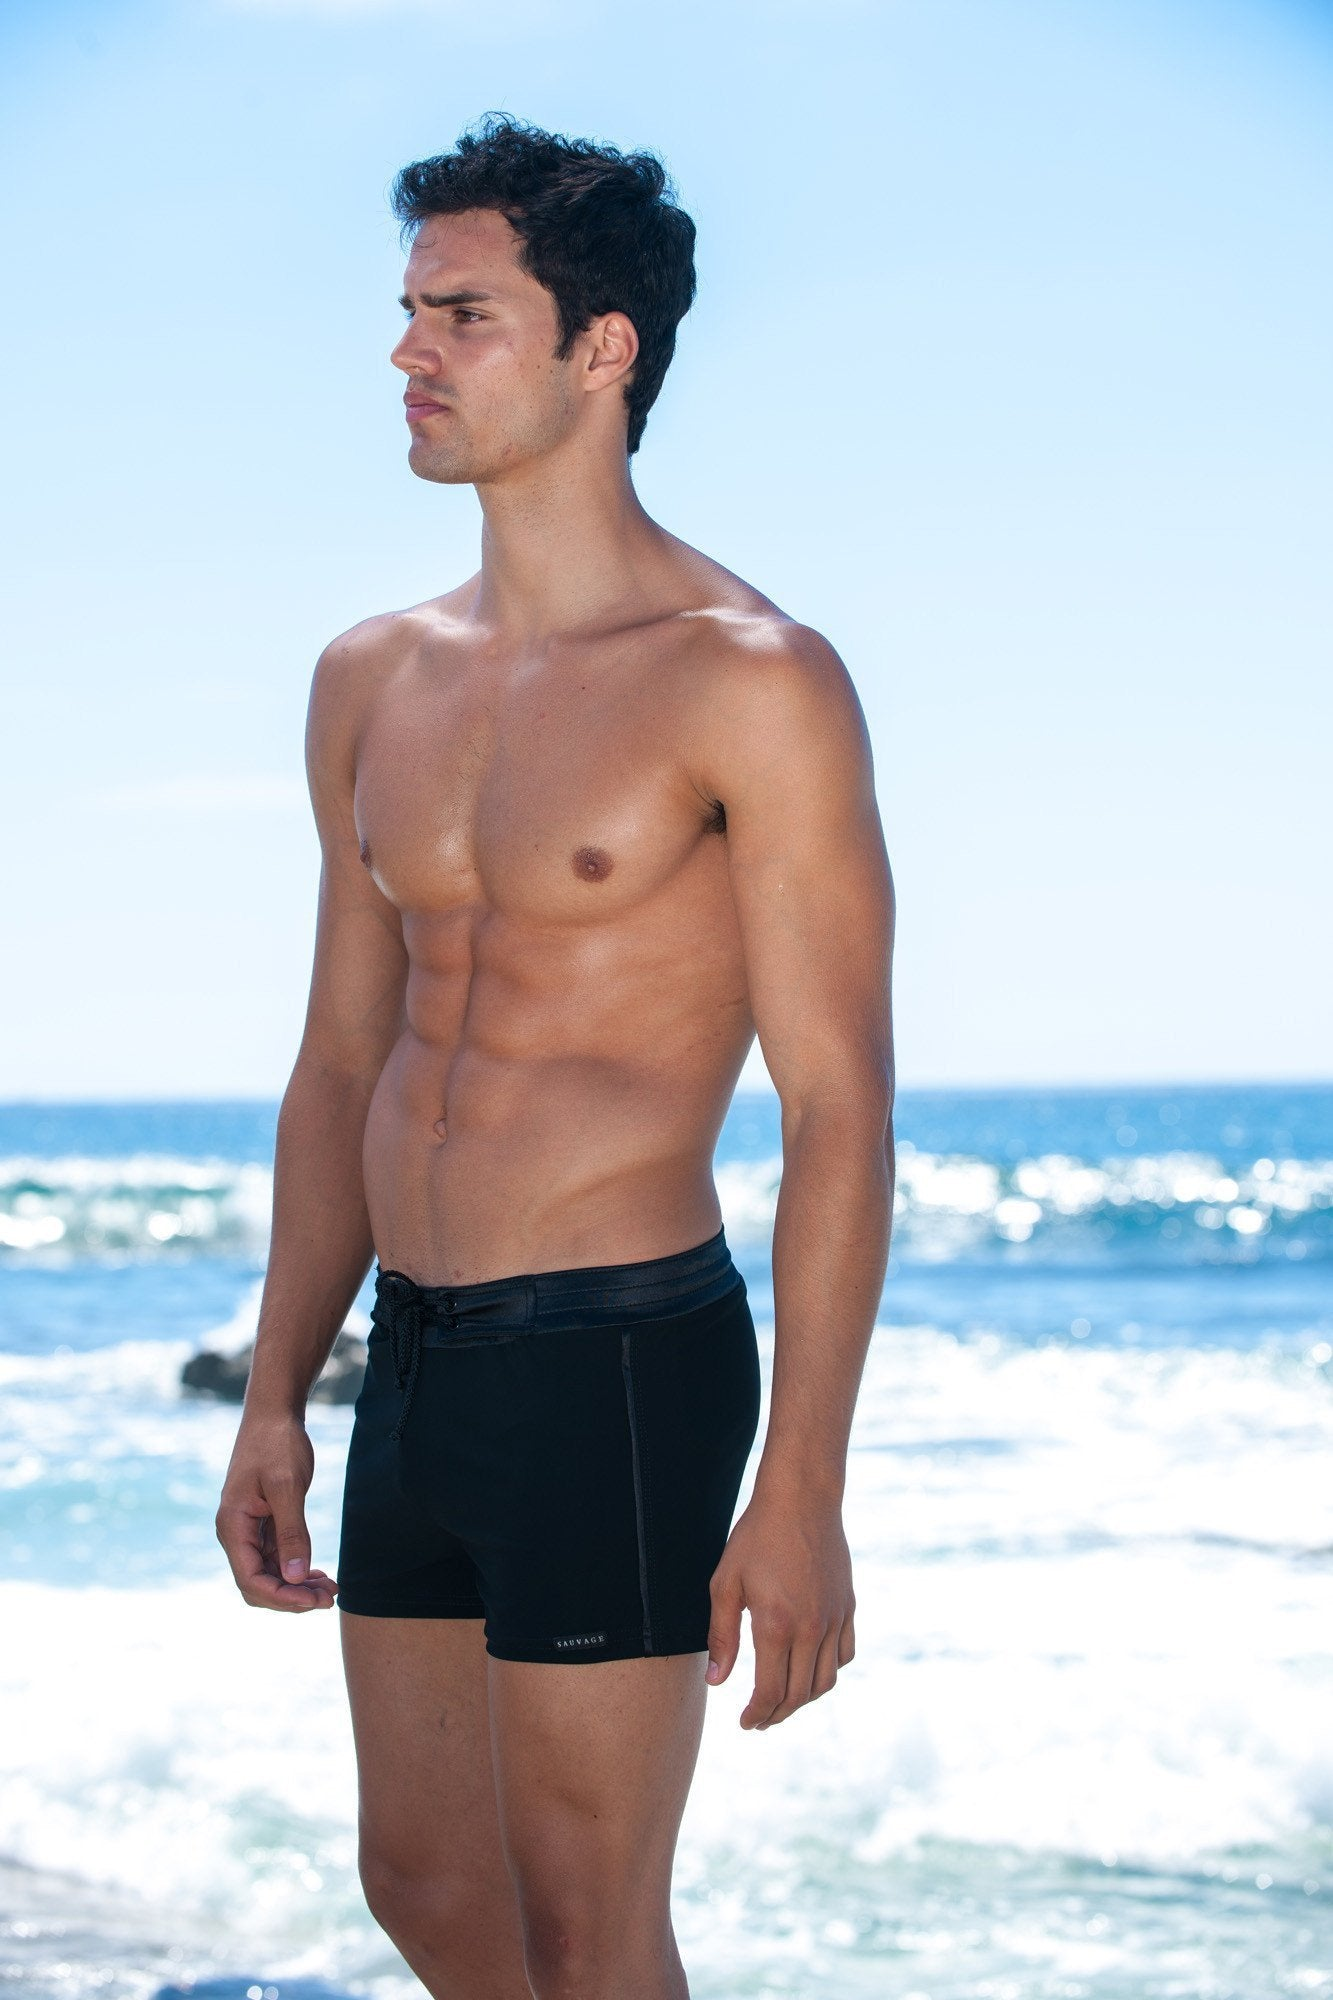 Sauvage Swimwear, Designer Swimwear from San Diego, CA made in usaTuxedo Black Retro Lycra Swimmer, , Mens Swim, Men's Swim, Sauvage - 2